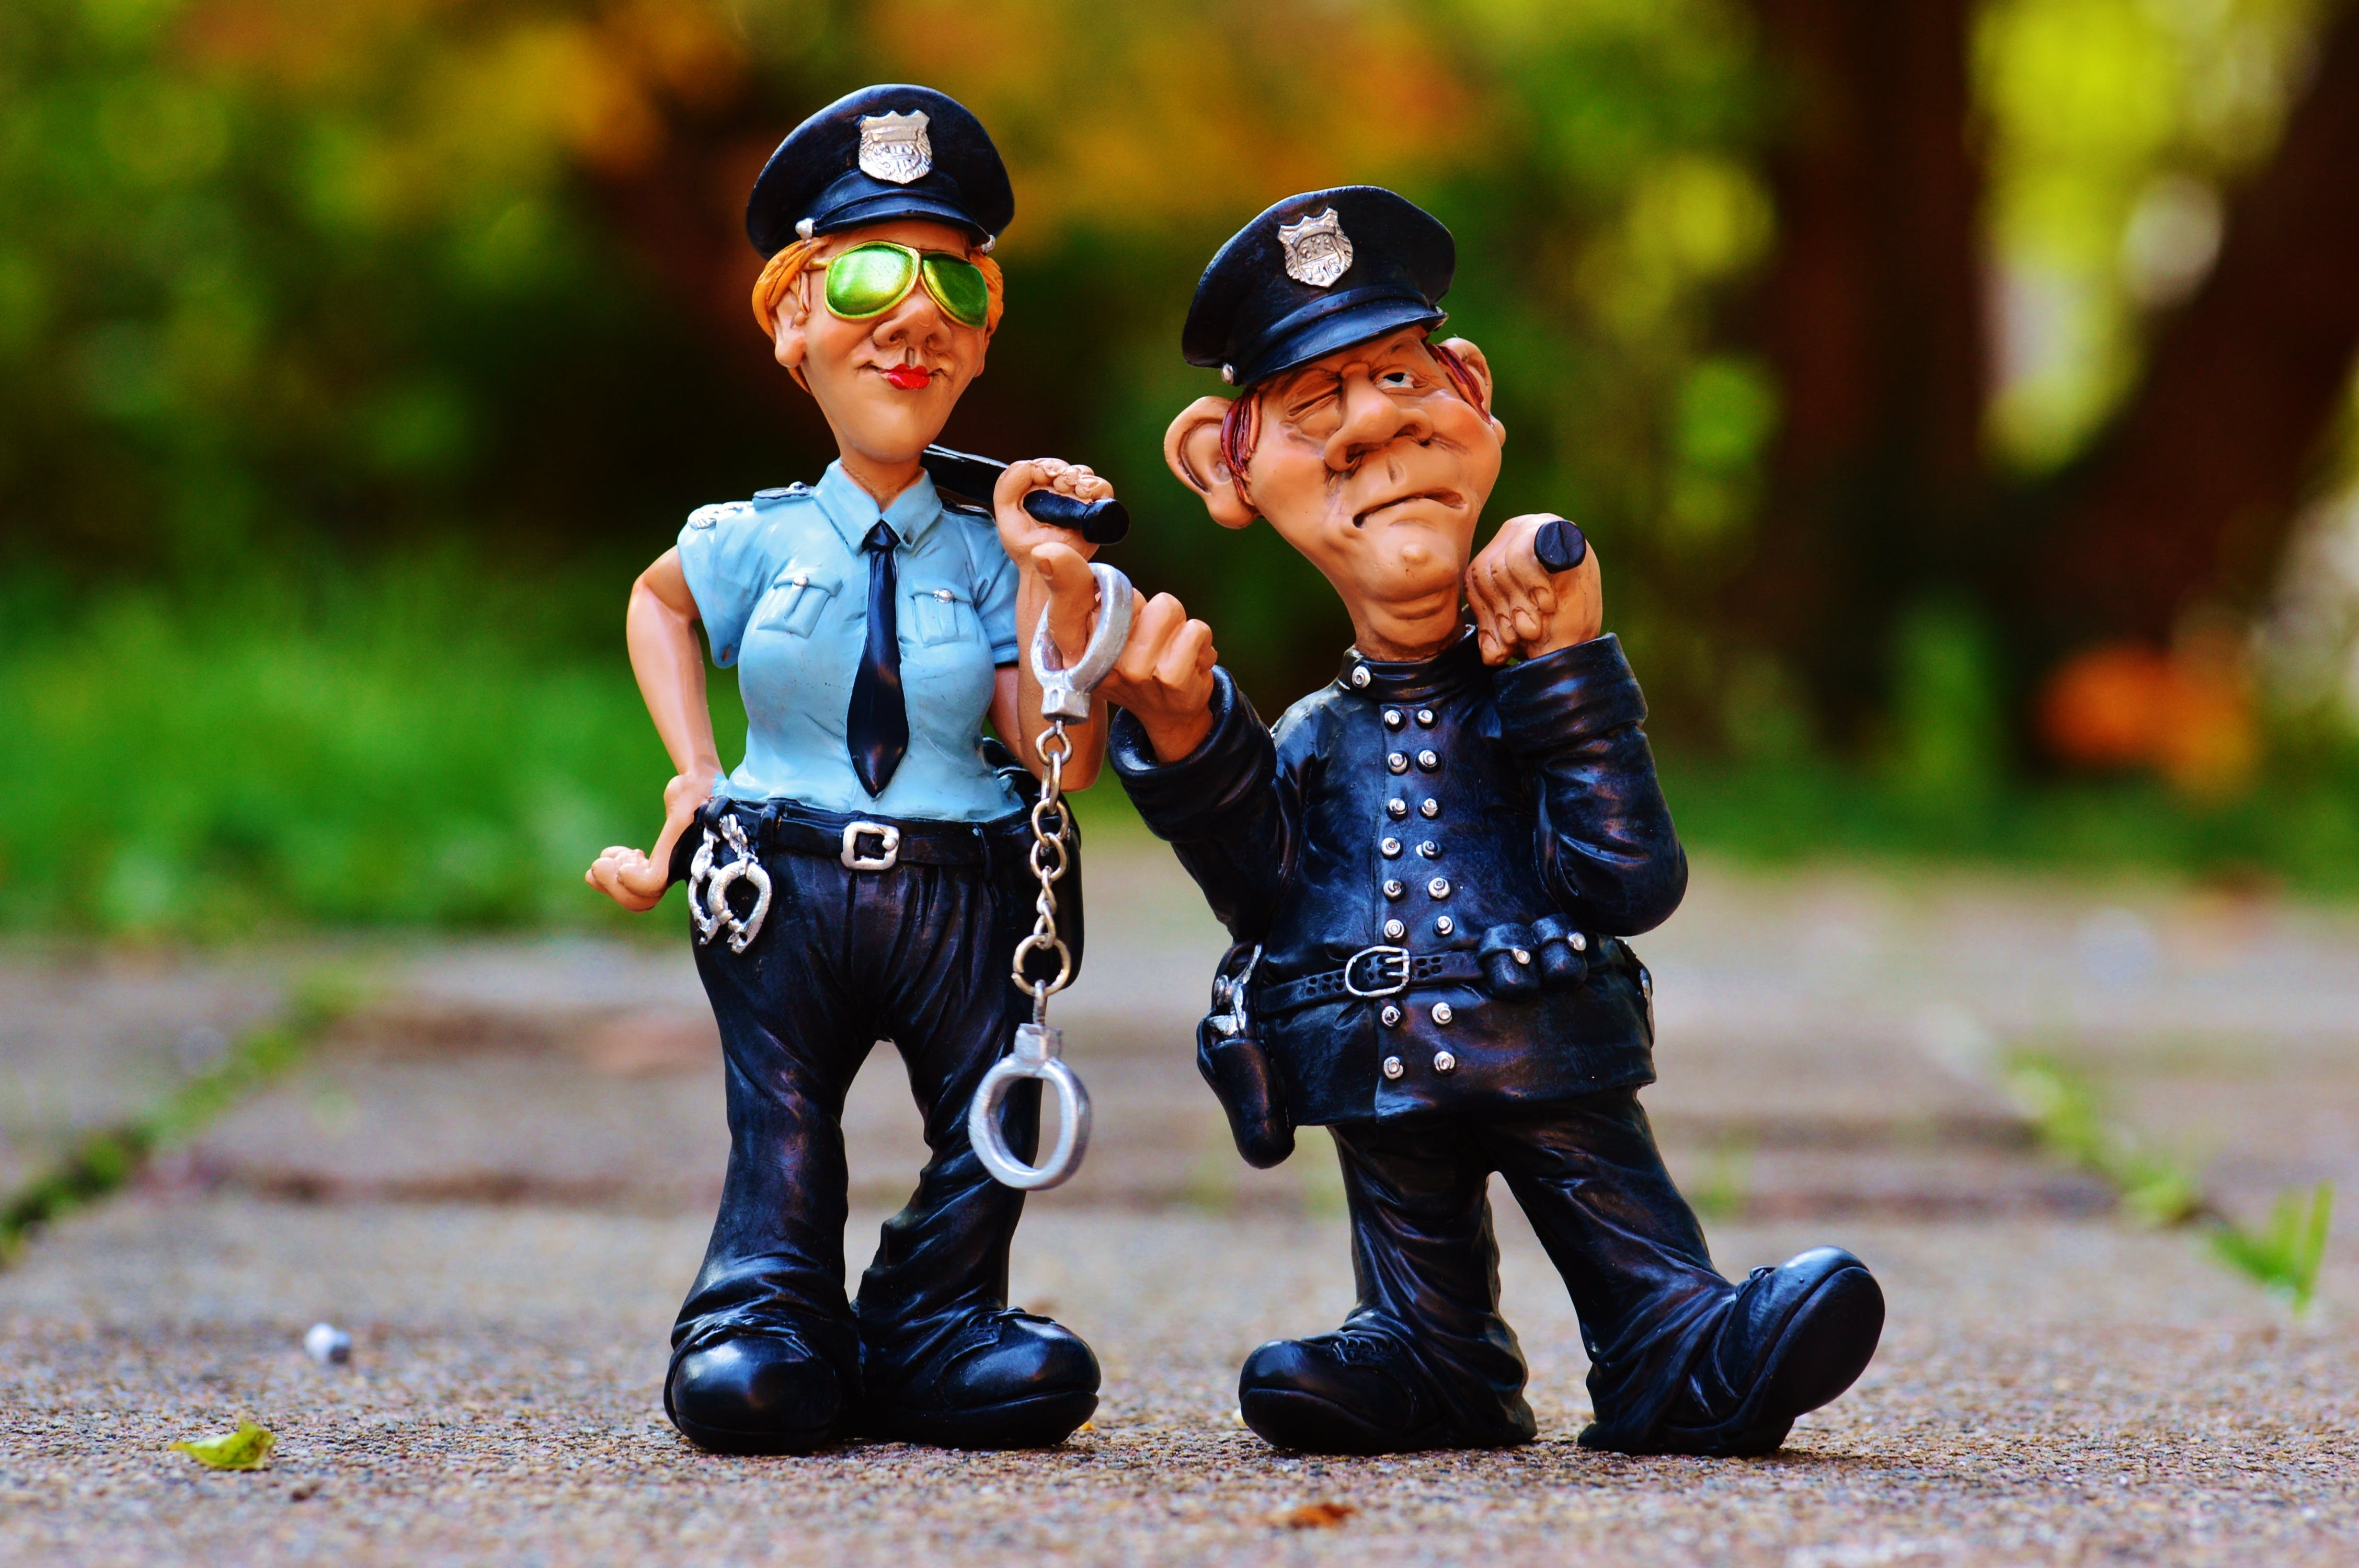 Police Man and Police Woman Plastic Toy on Fllow